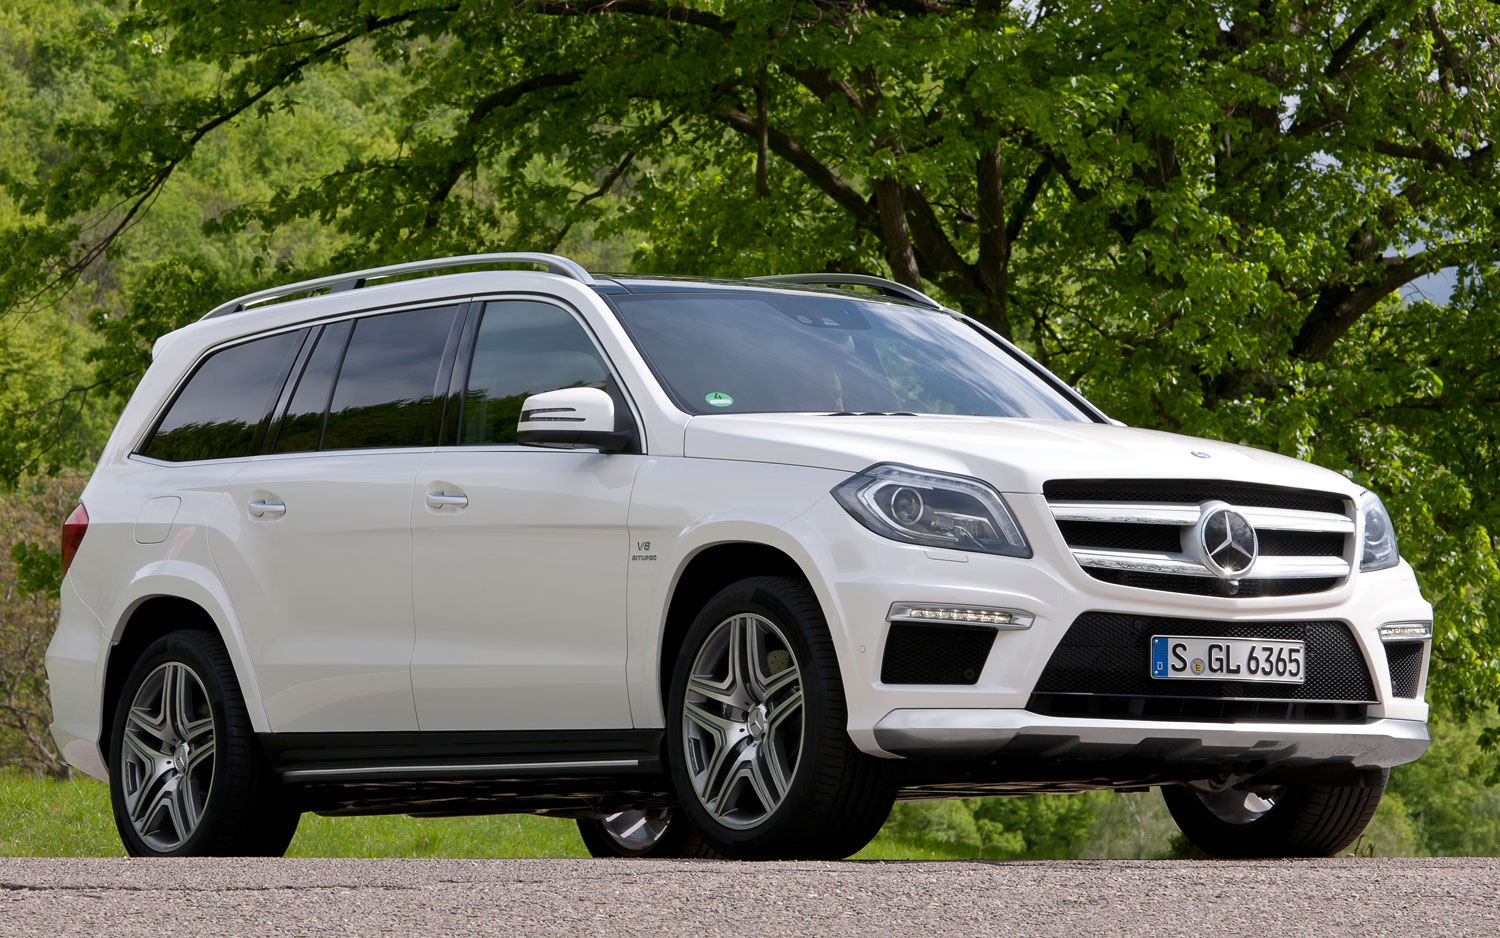 2013 Mercedes Benz GL63 AMG Front Three Quarters View 21